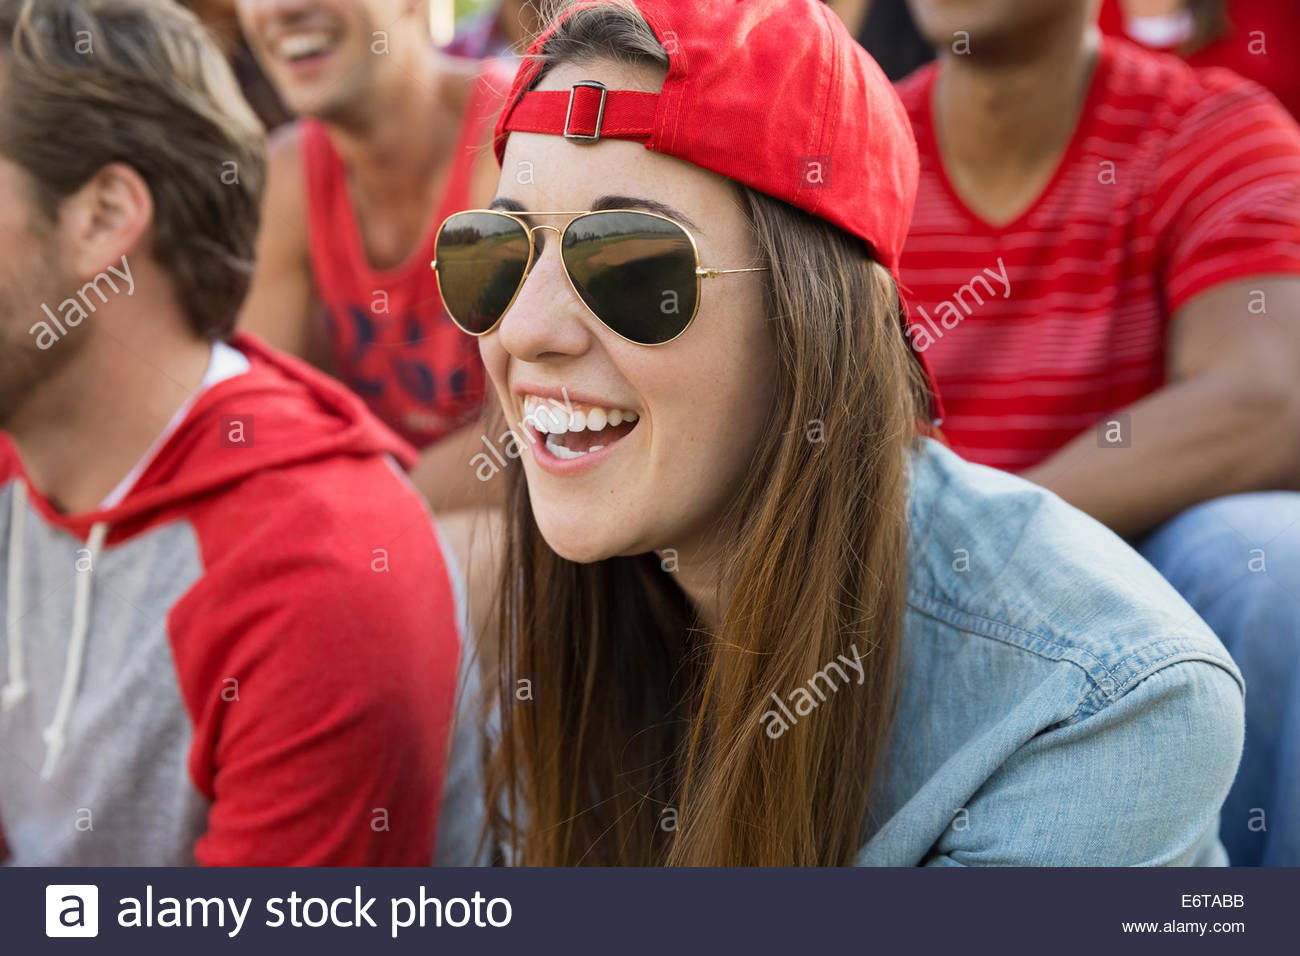 Woman laughing at sporting event - Stock Image